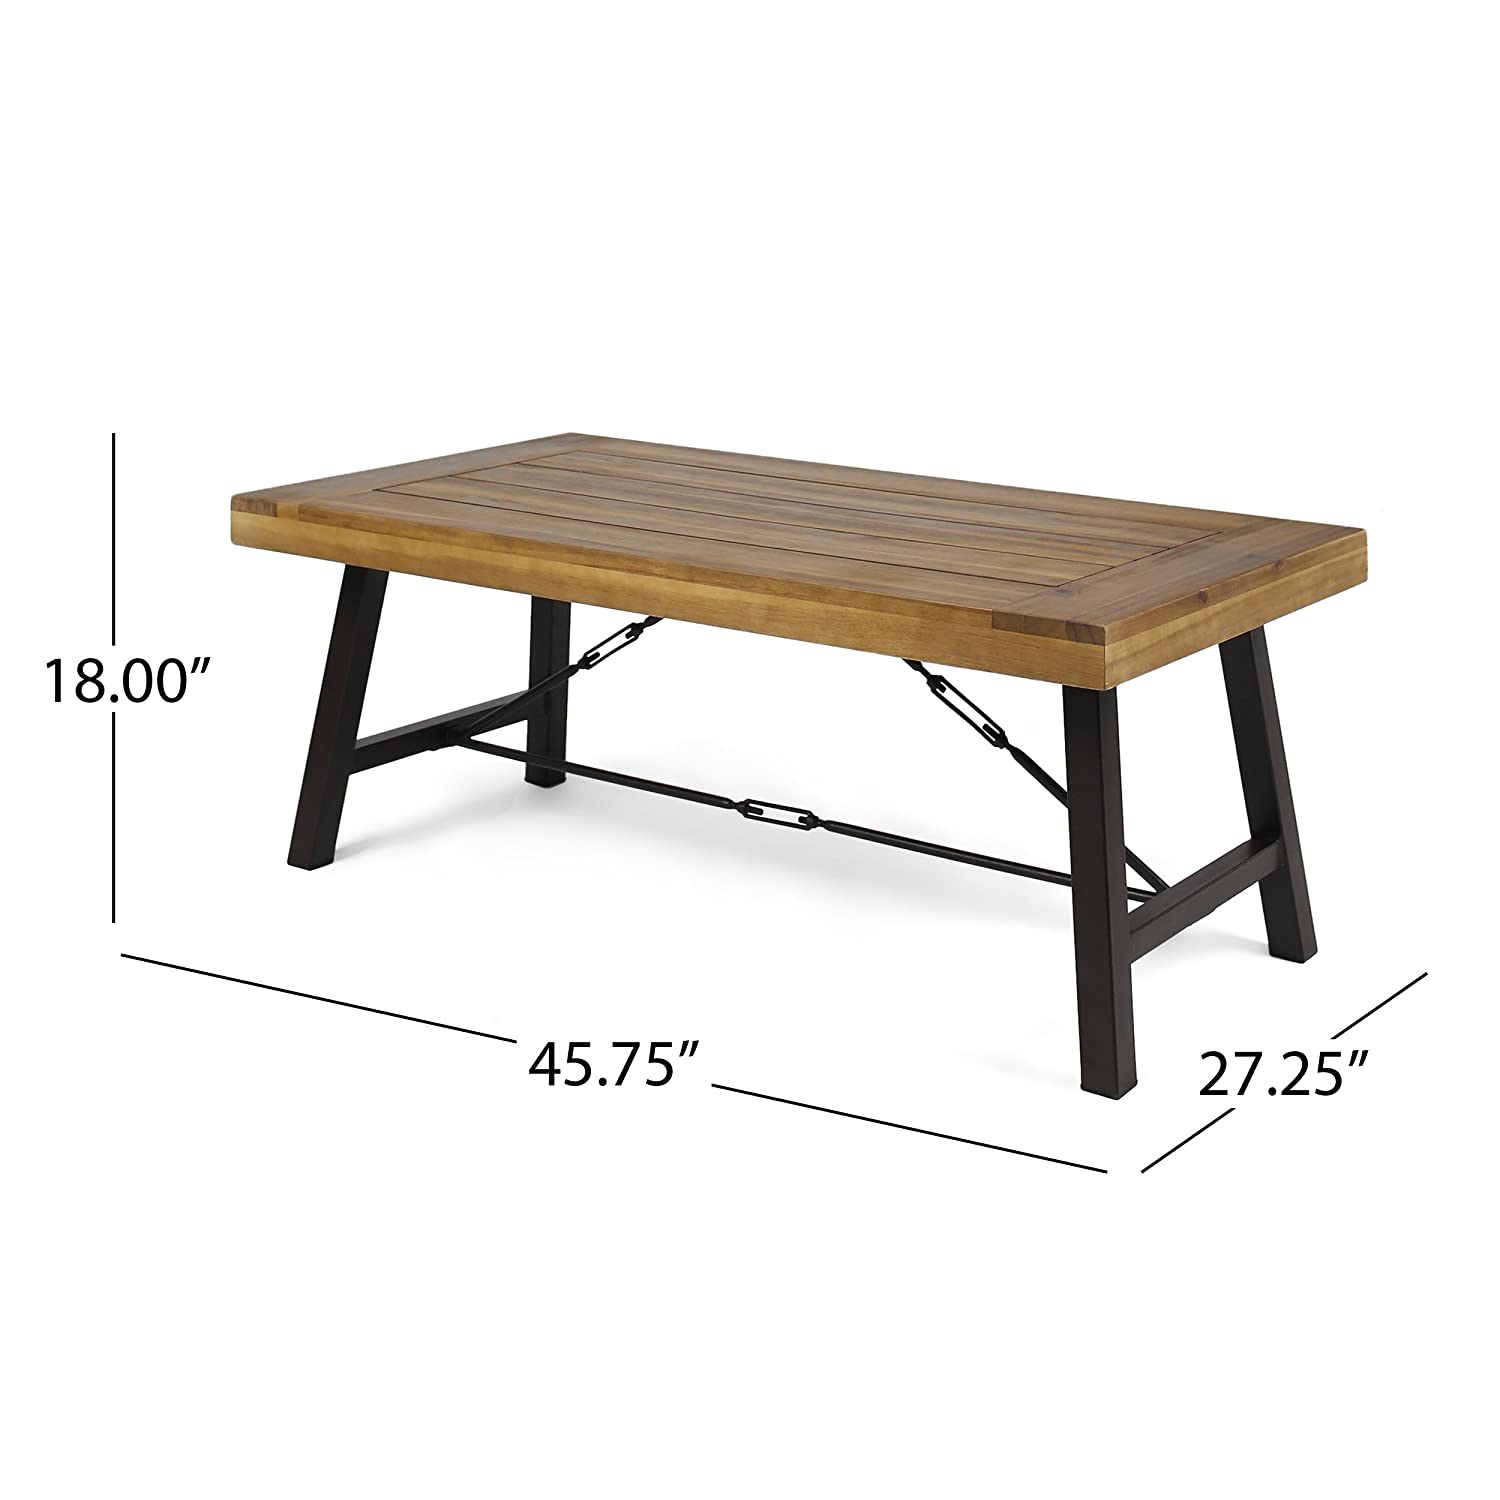 Amazon com great deal furniture easter outdoor acacia wood coffee table teak kitchen dining